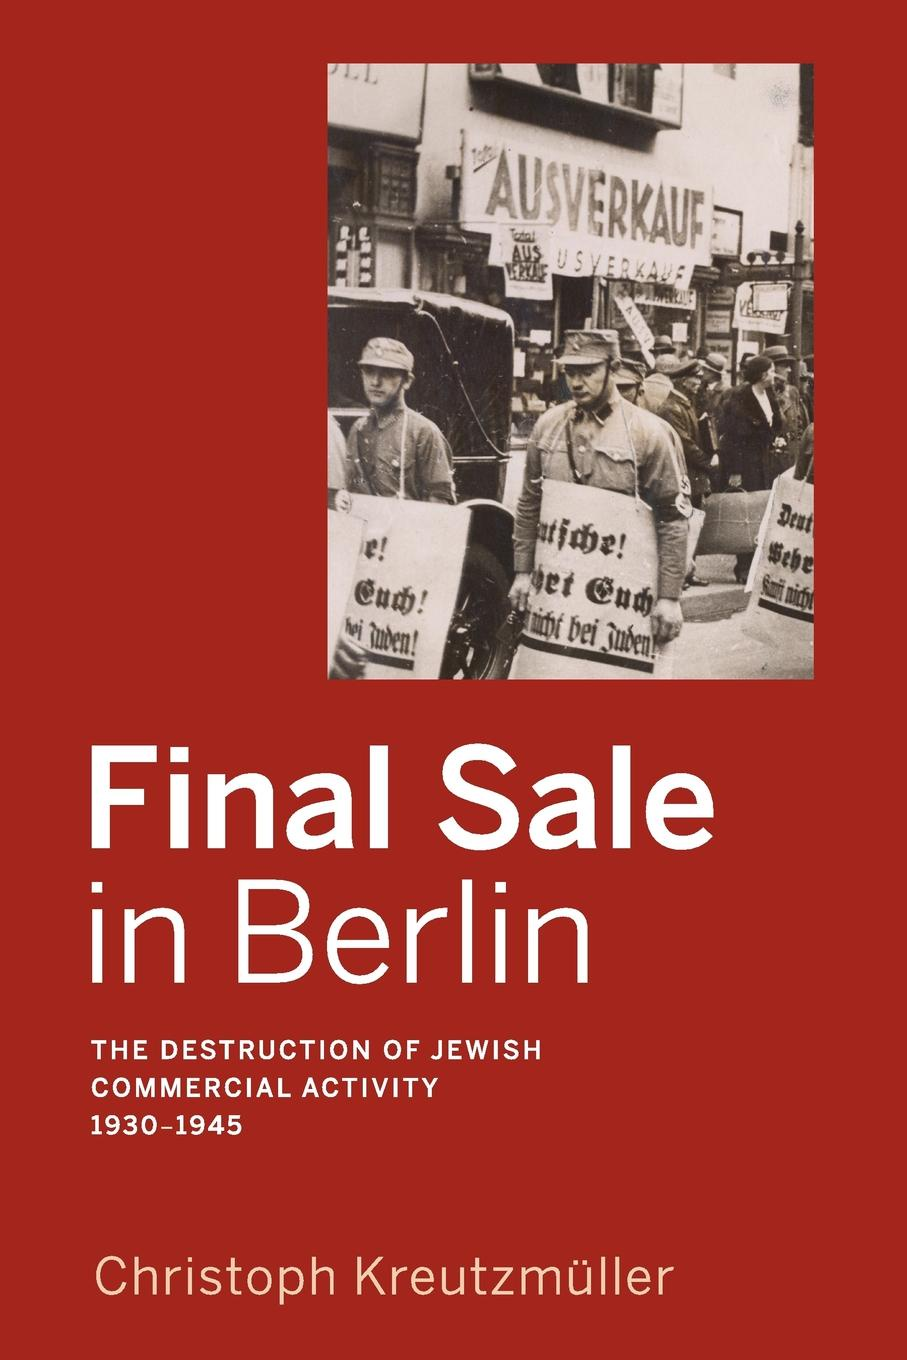 Final Sale in Berlin. The Destruction of Jewish Commercial Activity, 1930-1945